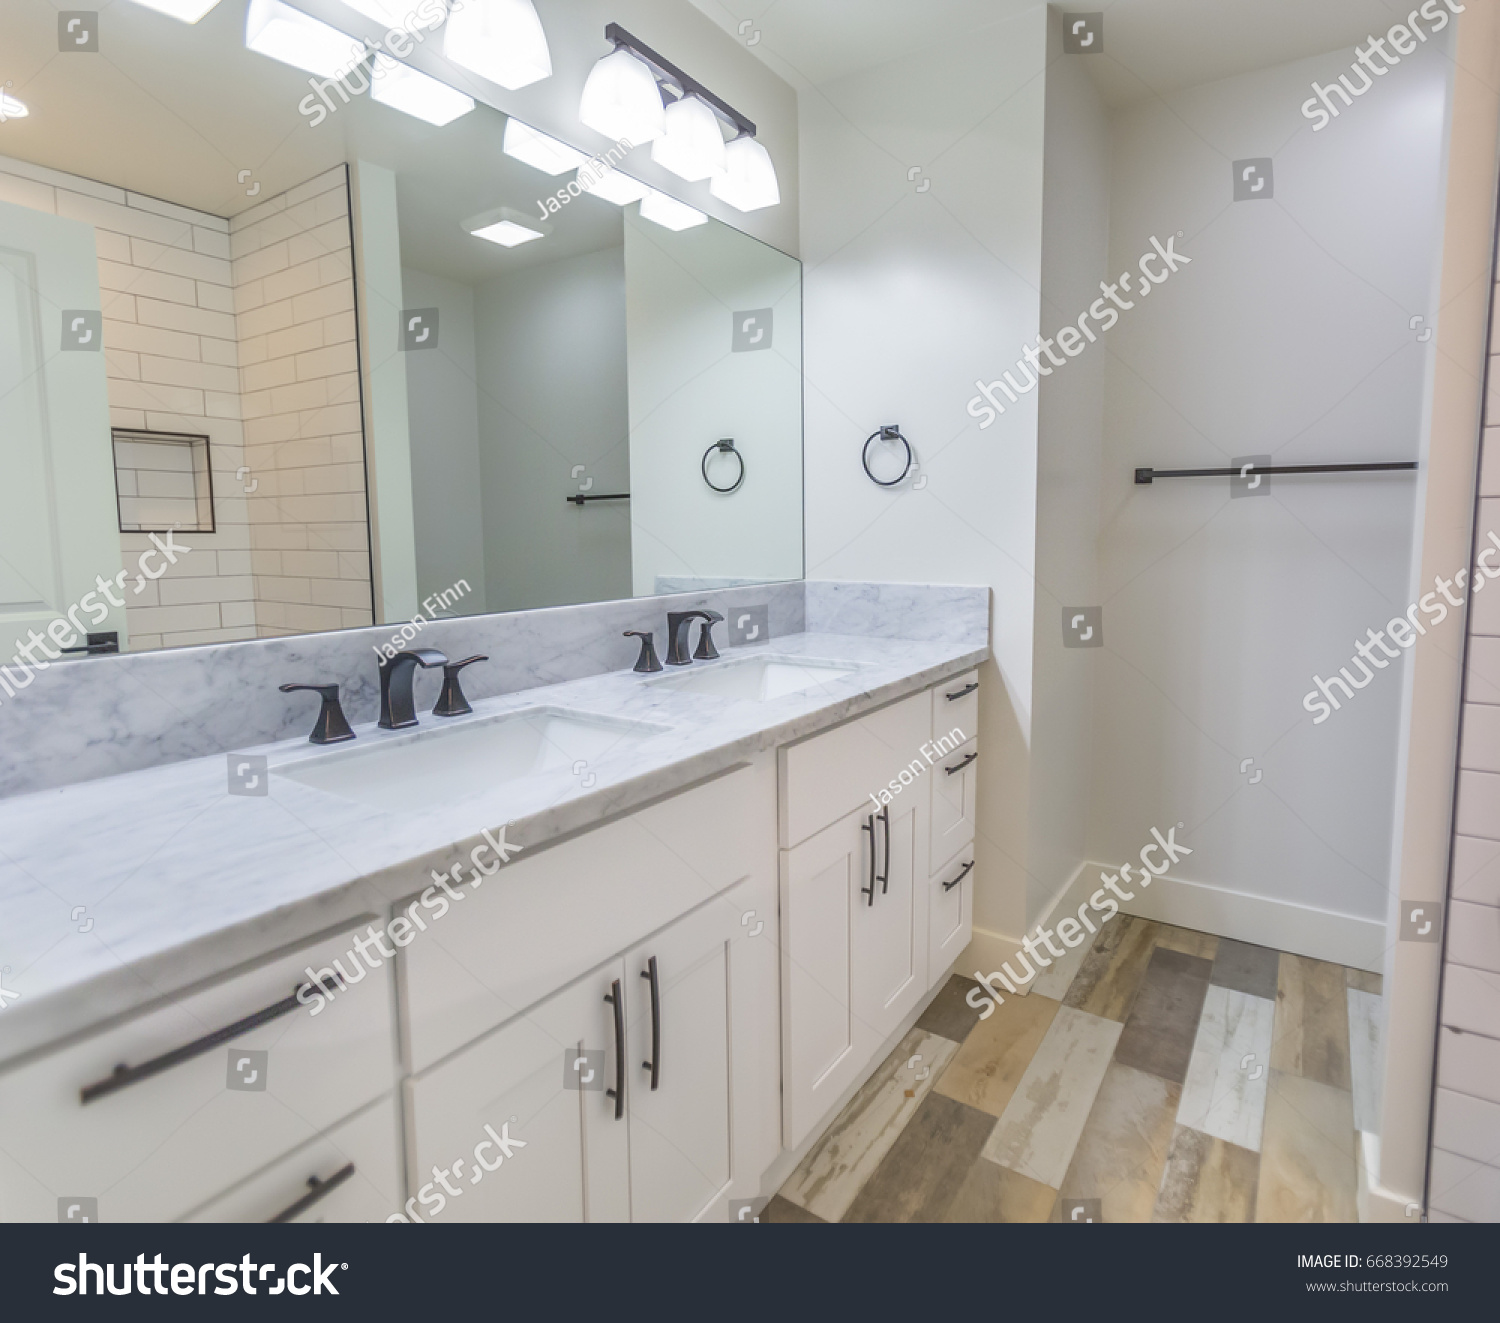 Model homes always show off beautiful bathrooms with clever design ...